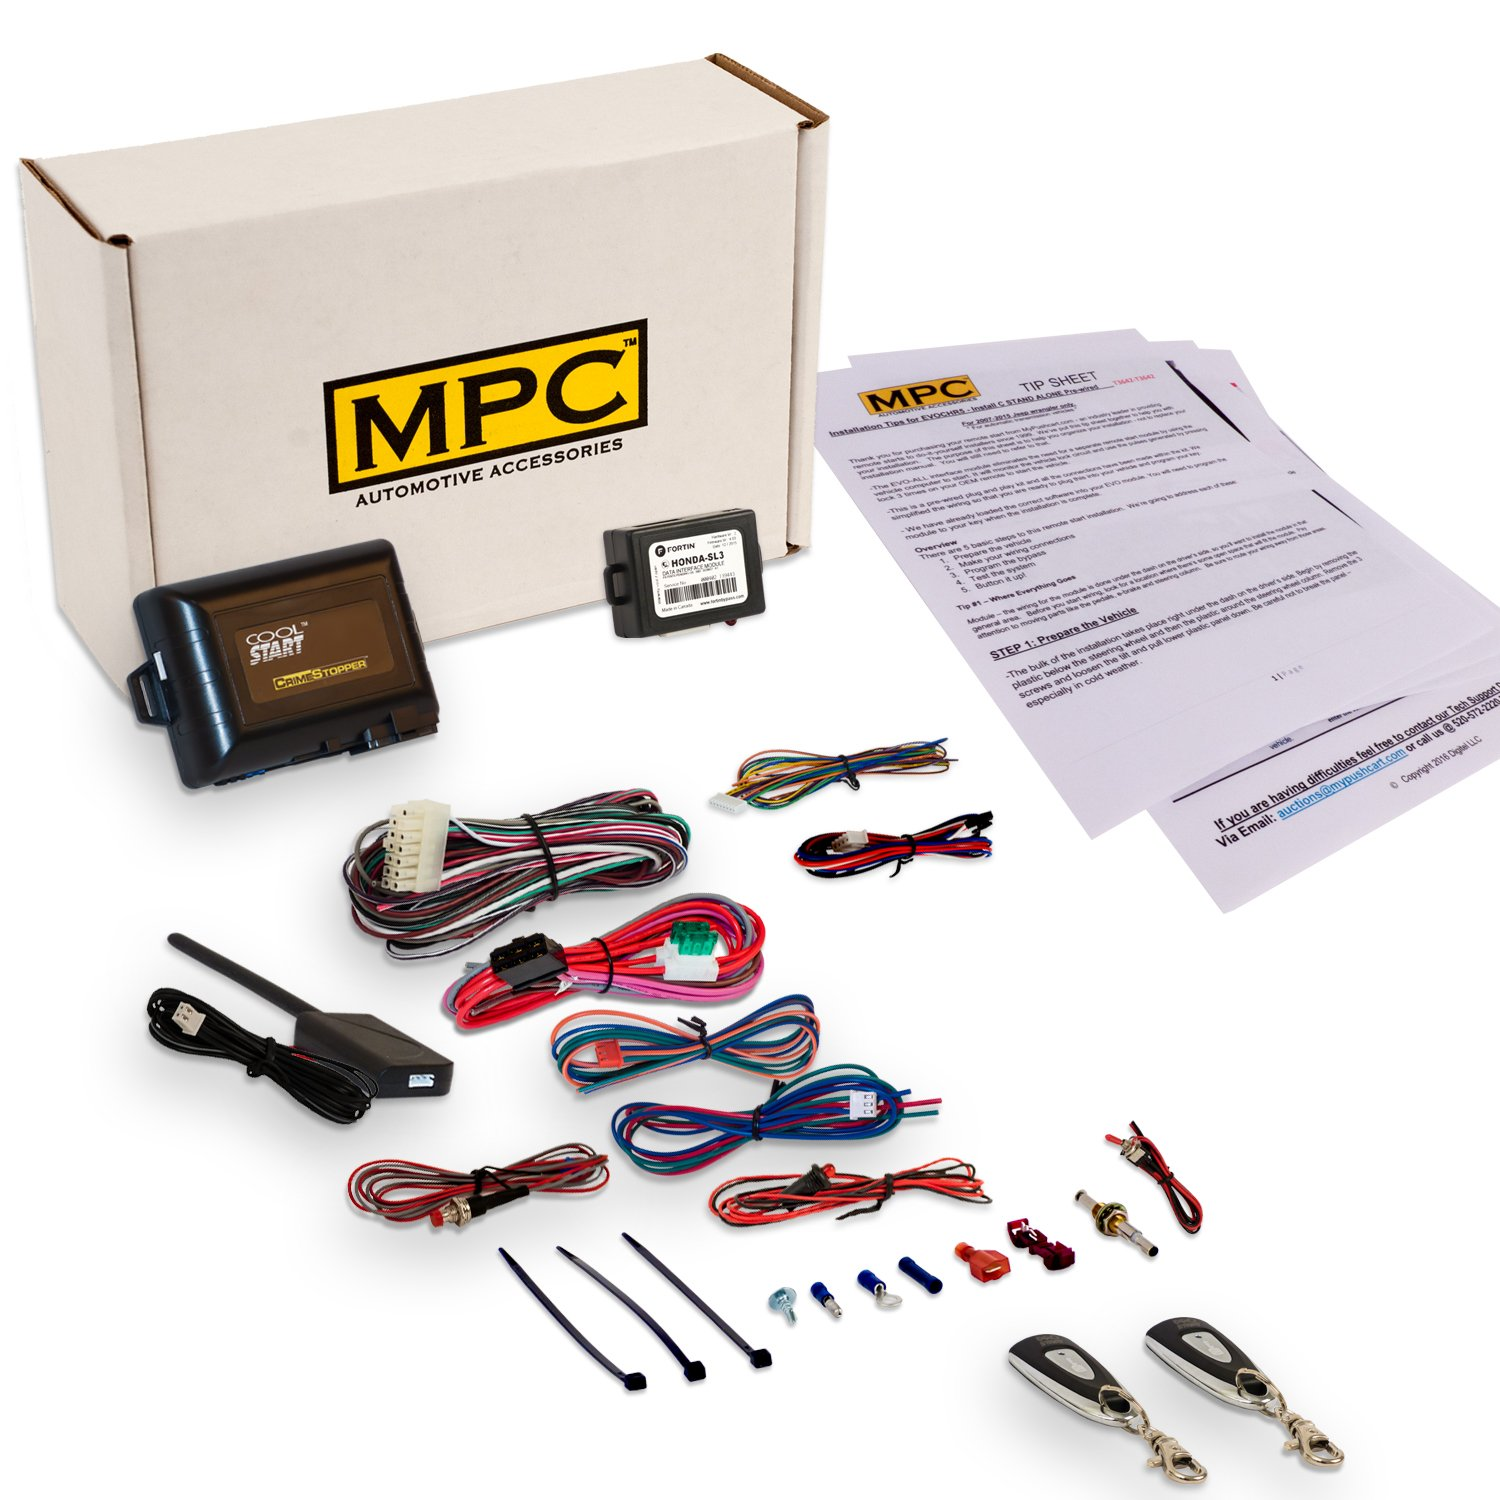 71fUfVKiarL._SL1500_ amazon com complete 1 button remote start kit for honda and acura  at reclaimingppi.co